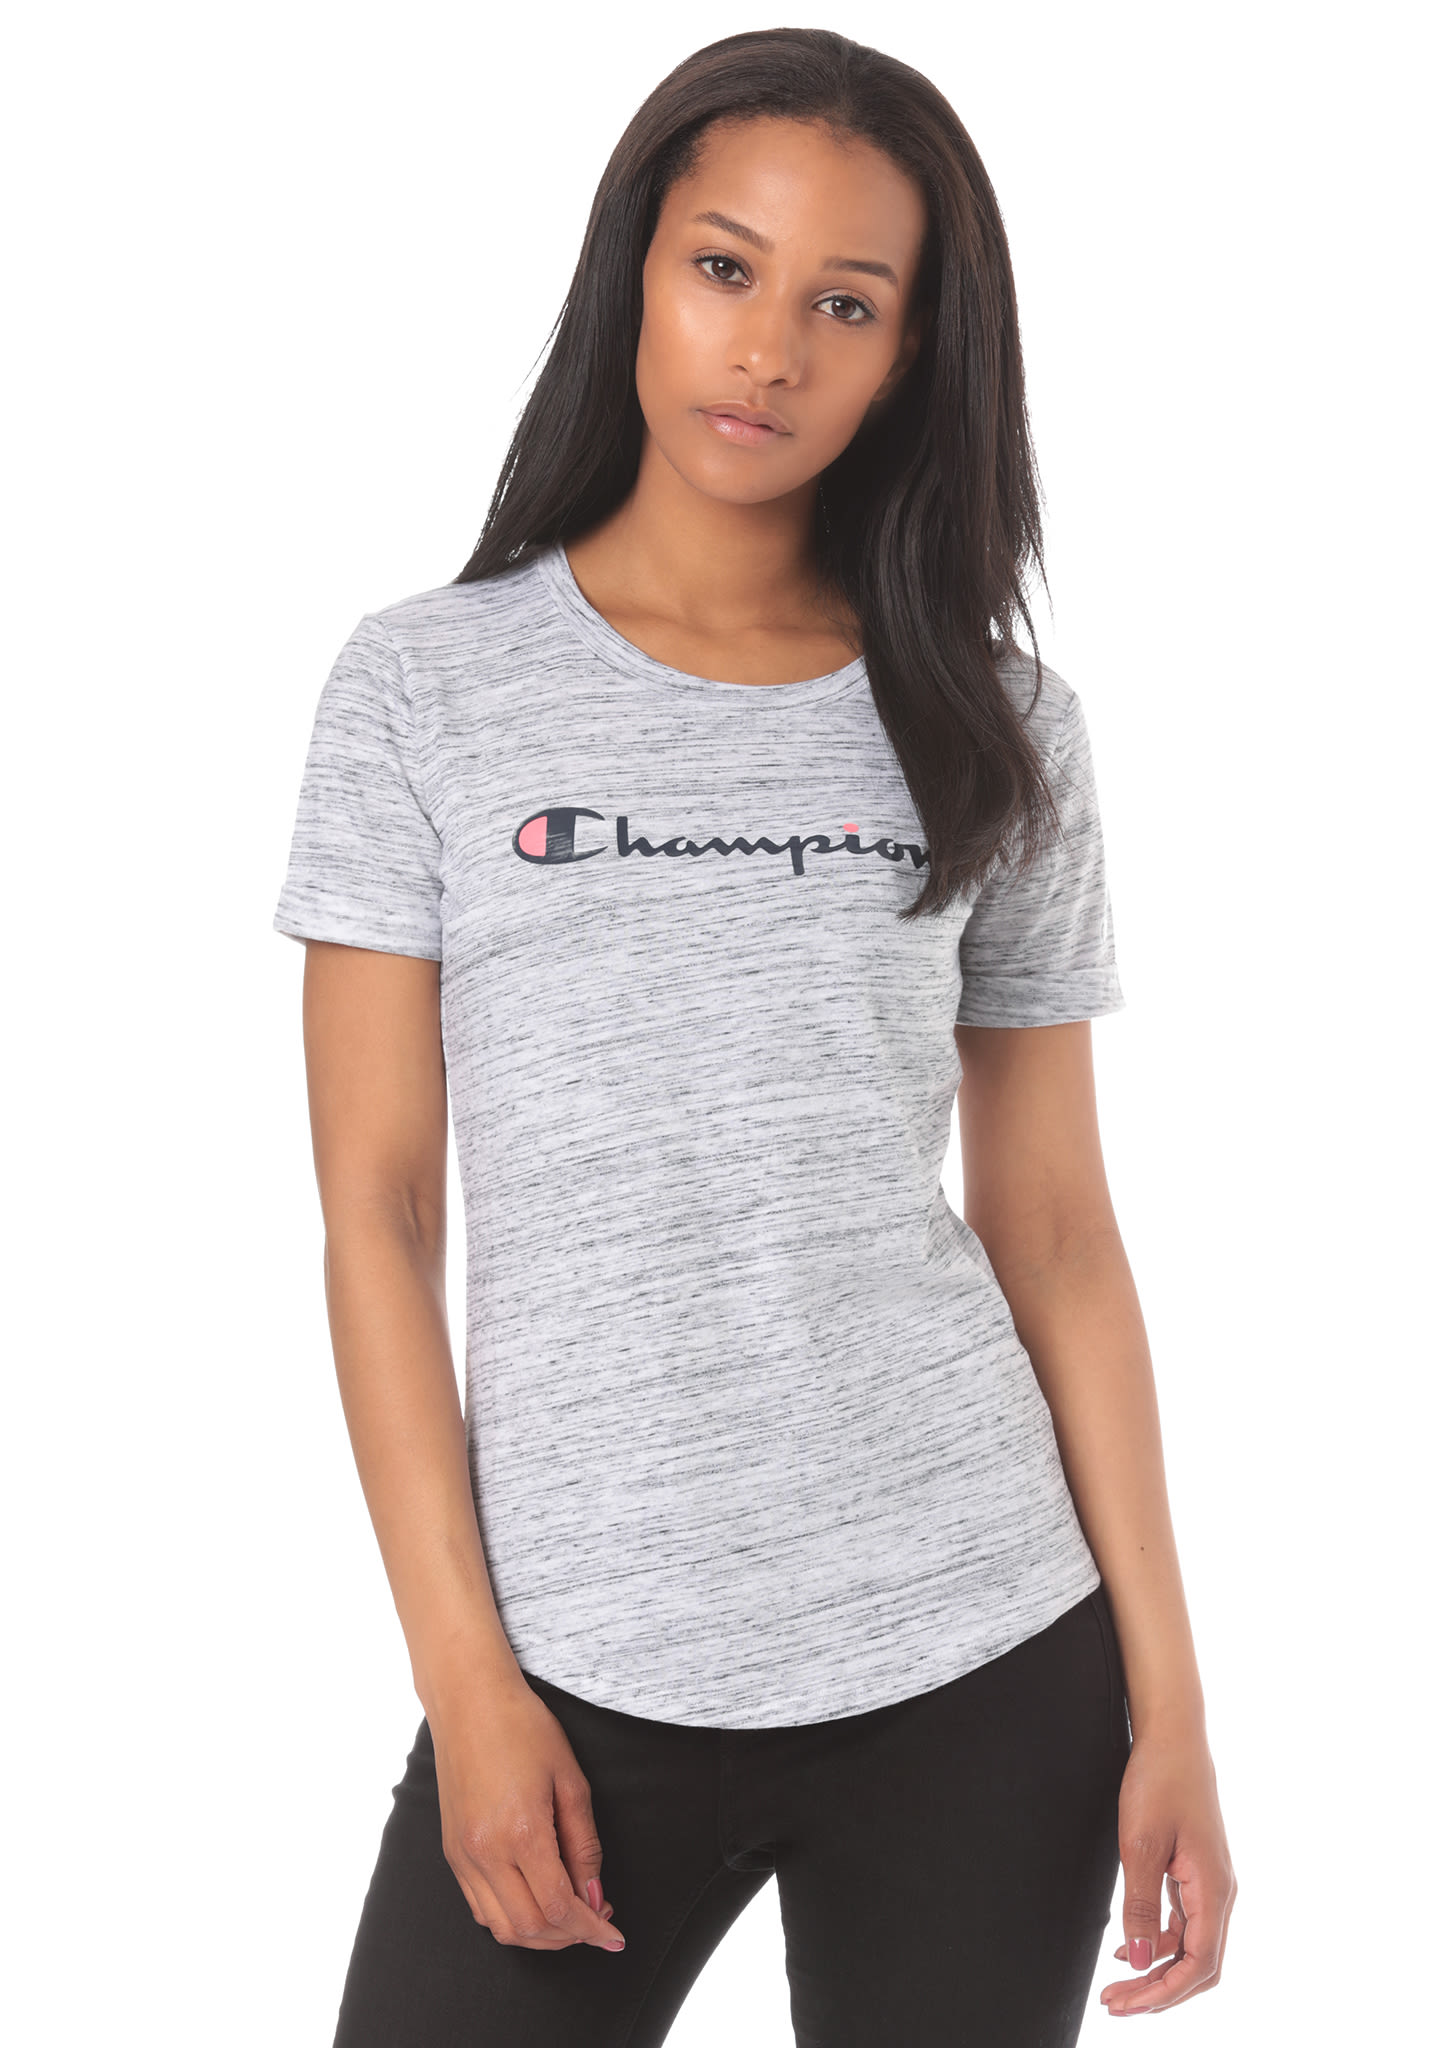 Champion American Classics - T-Shirt for Women - Grey - Planet Sports 403630ba9